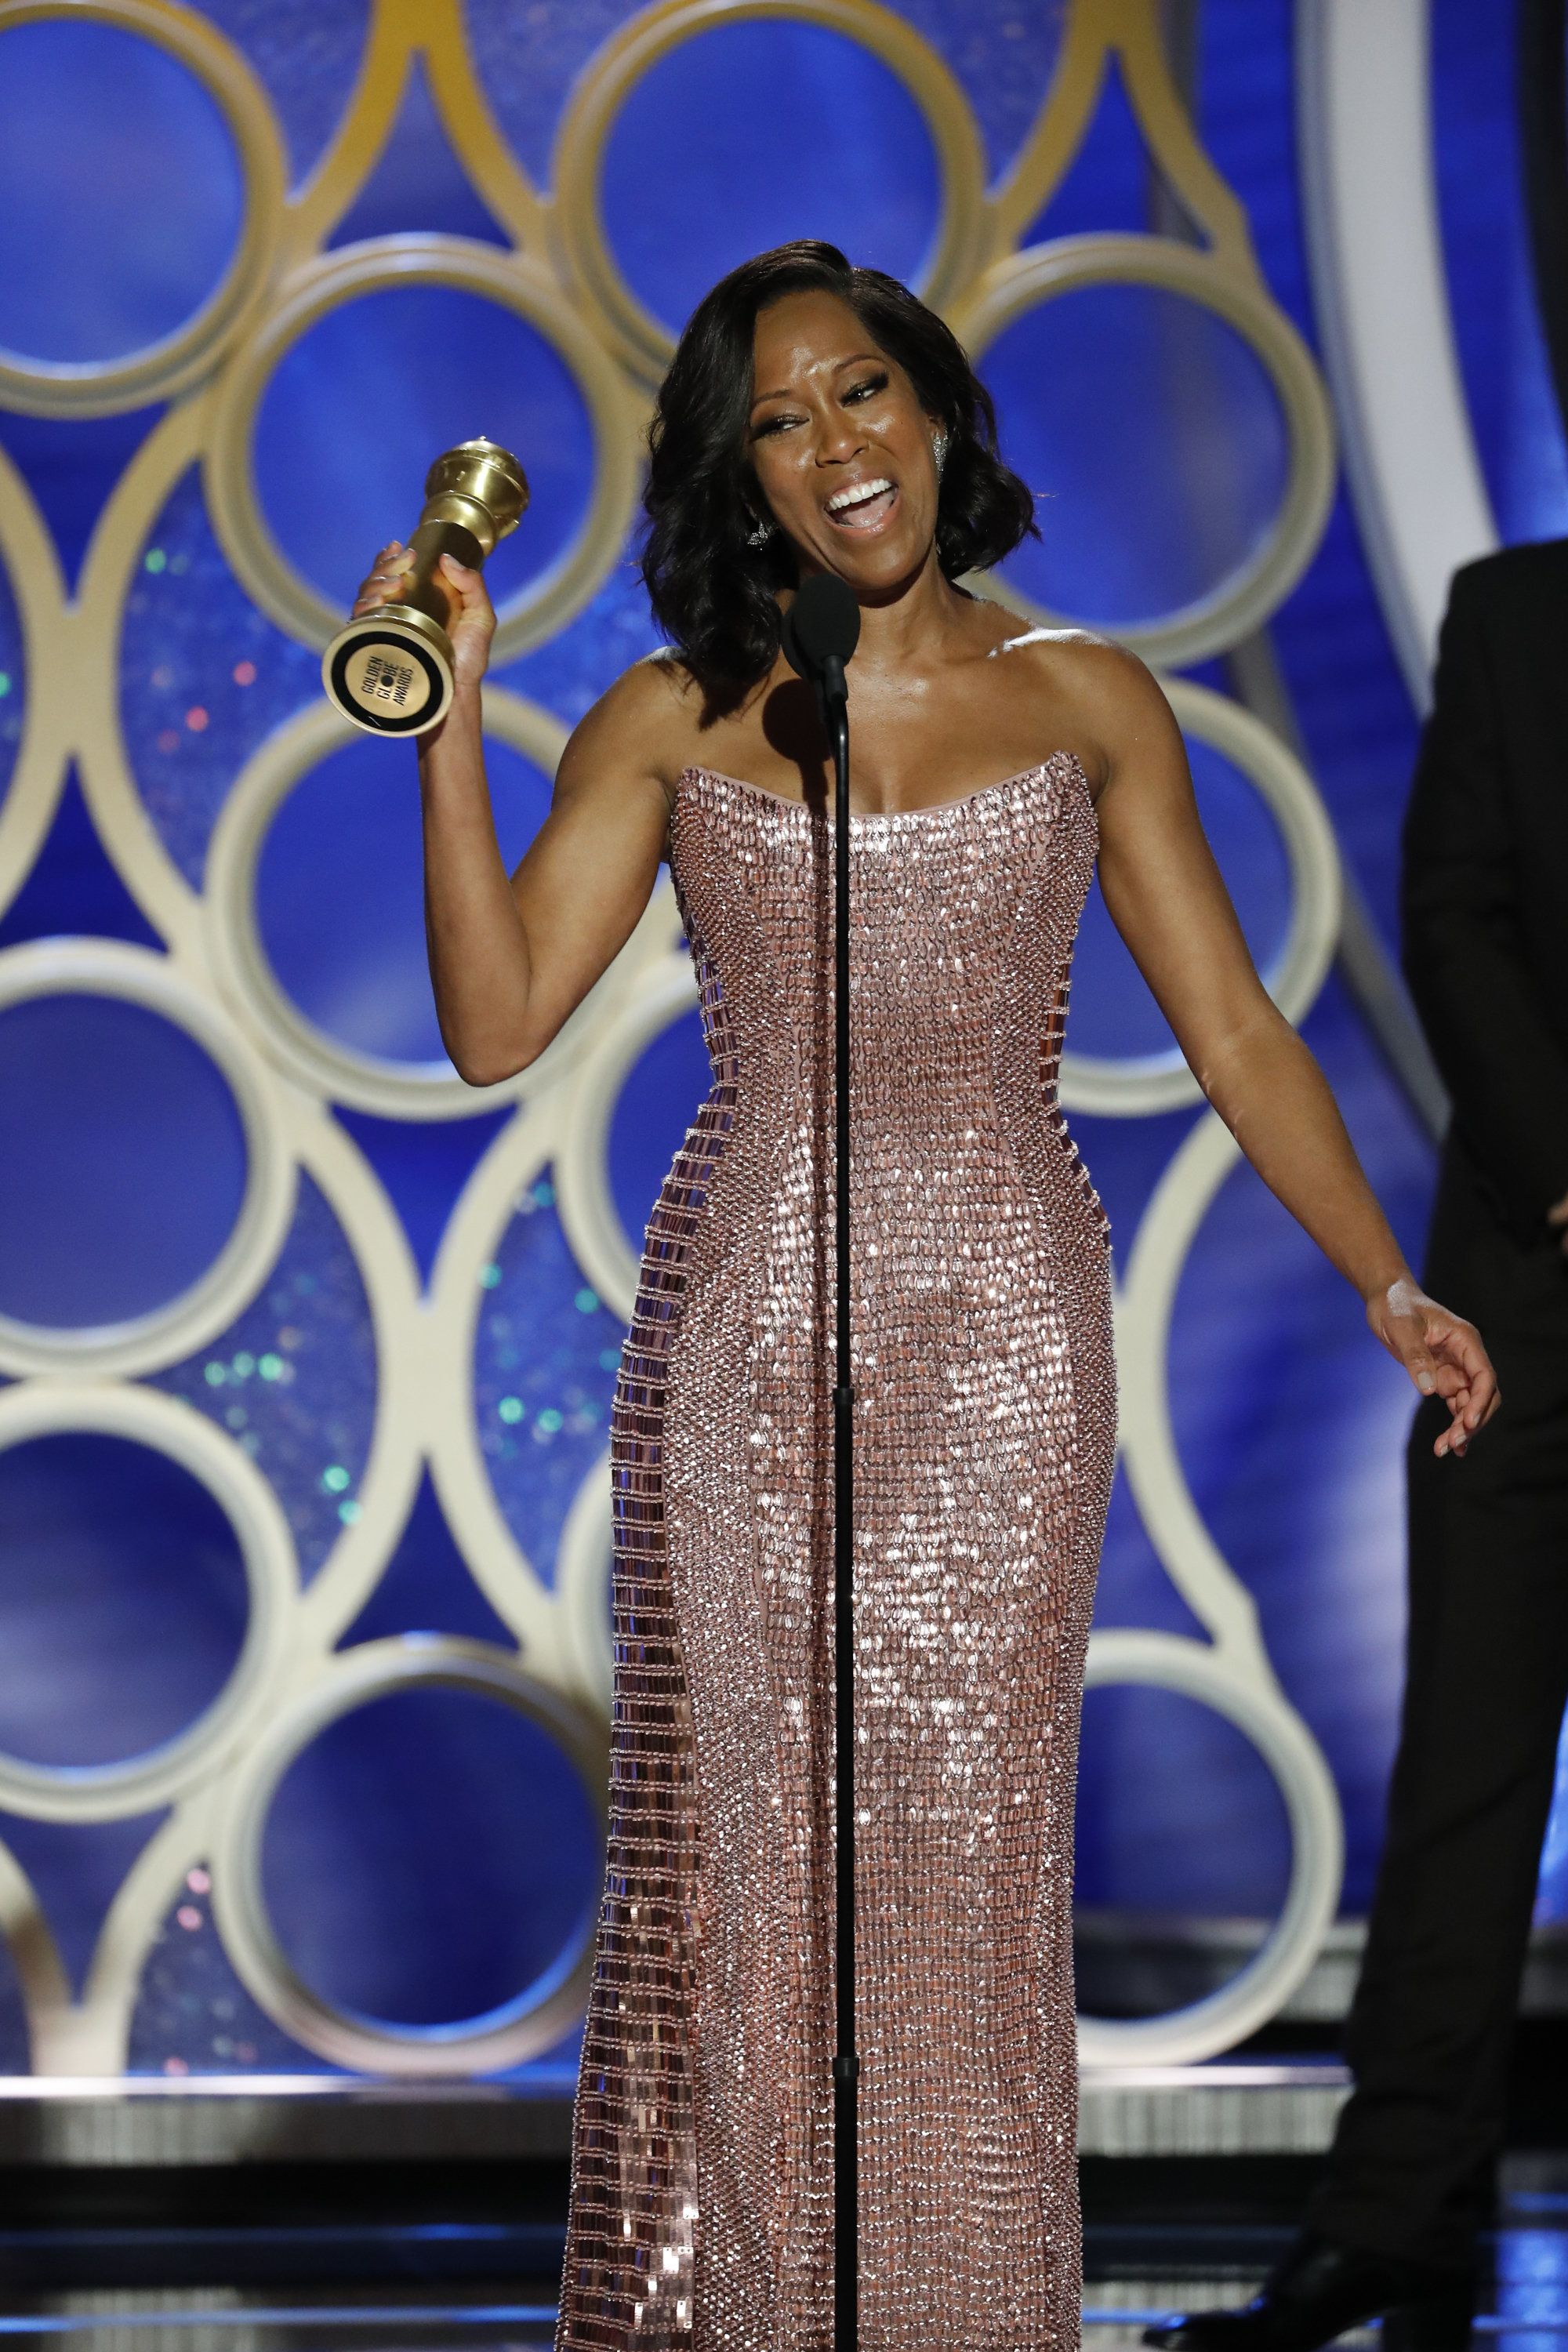 "BEVERLY HILLS, CALIFORNIA - JANUARY 06: In this handout photo provided by NBCUniversal, Regina King from ""If Beale Street Could Talk"" accepts the Best Actress in a Supporting Role in any Motion Picture award onstage during the 76th Annual Golden Globe Awards at The Beverly Hilton Hotel on January 06, 2019 in Beverly Hills, California.  (Photo by Paul Drinkwater/NBCUniversal via Getty Images)"